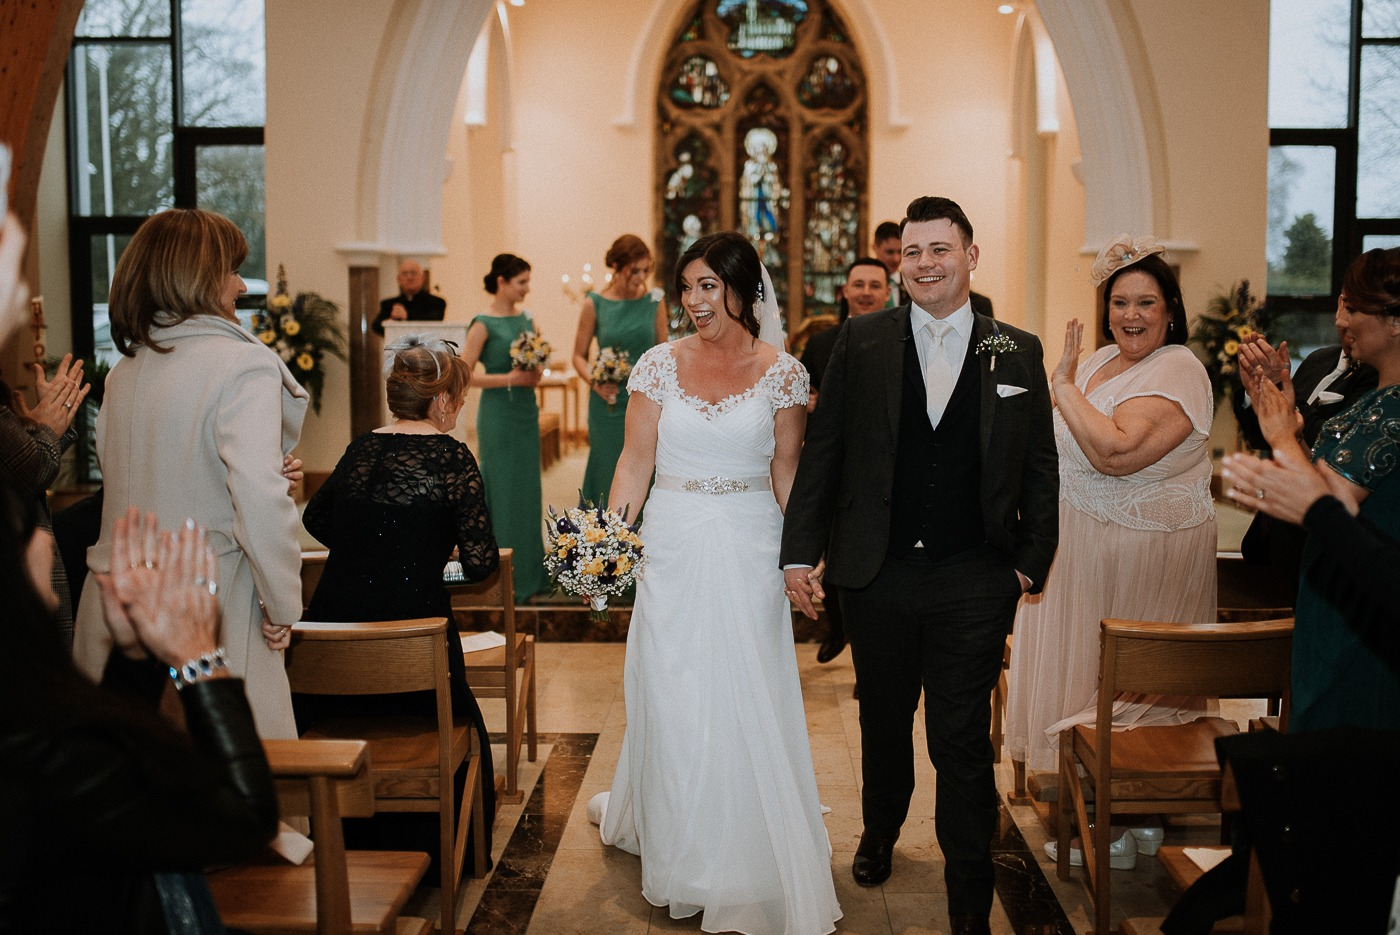 Fidelma & Sean's Wedding at Radisson Blu Hotel, Sligo